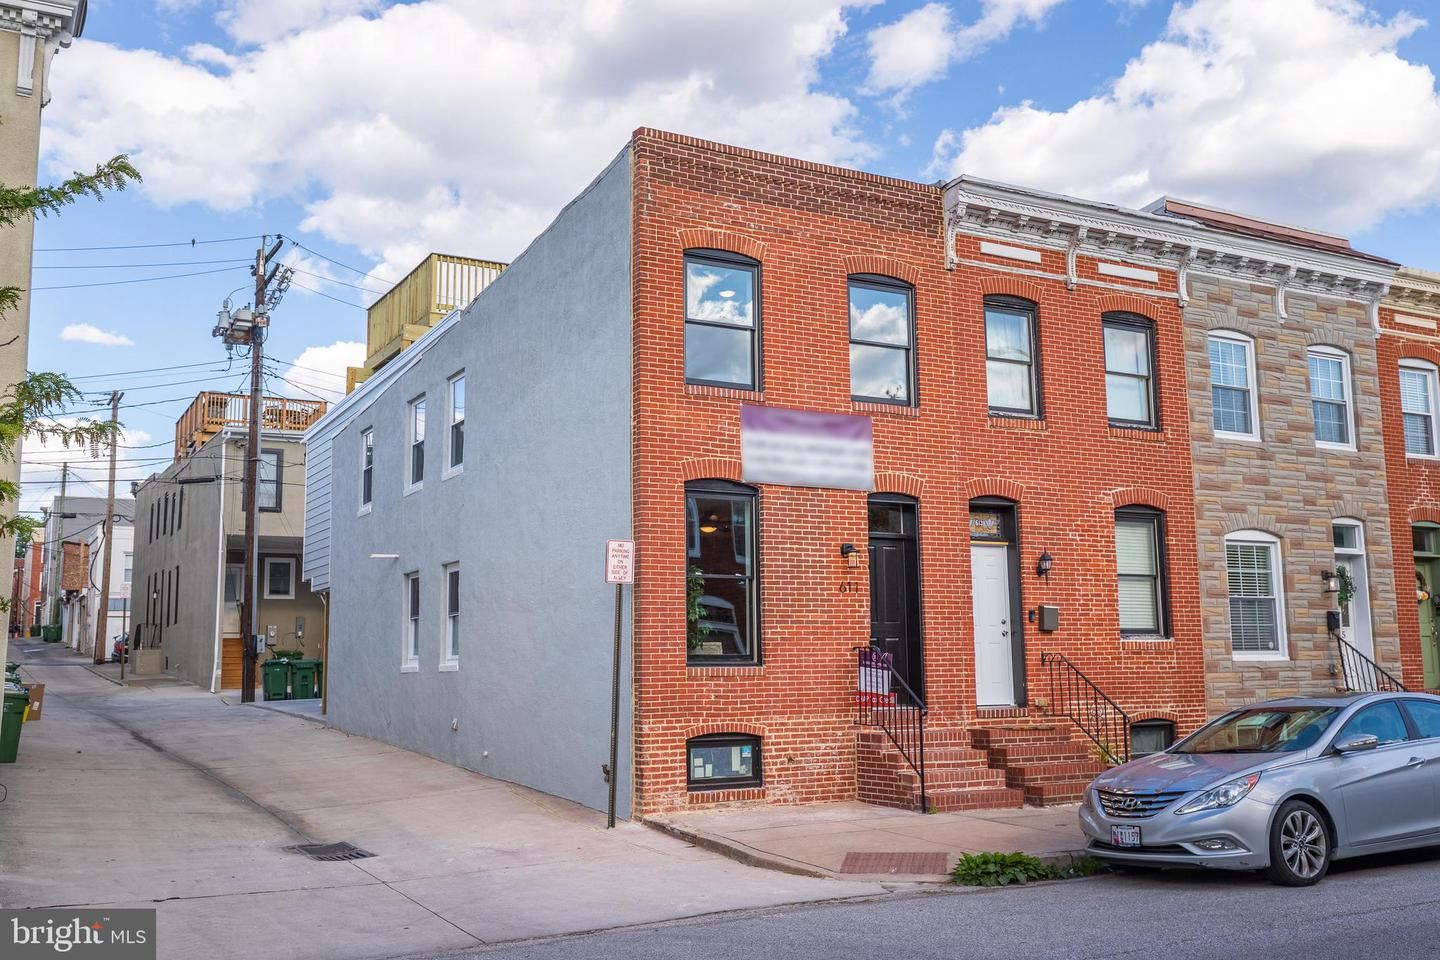 611 S EAST AVE, Baltimore, MD 21224 - MLS#: MDBA549820